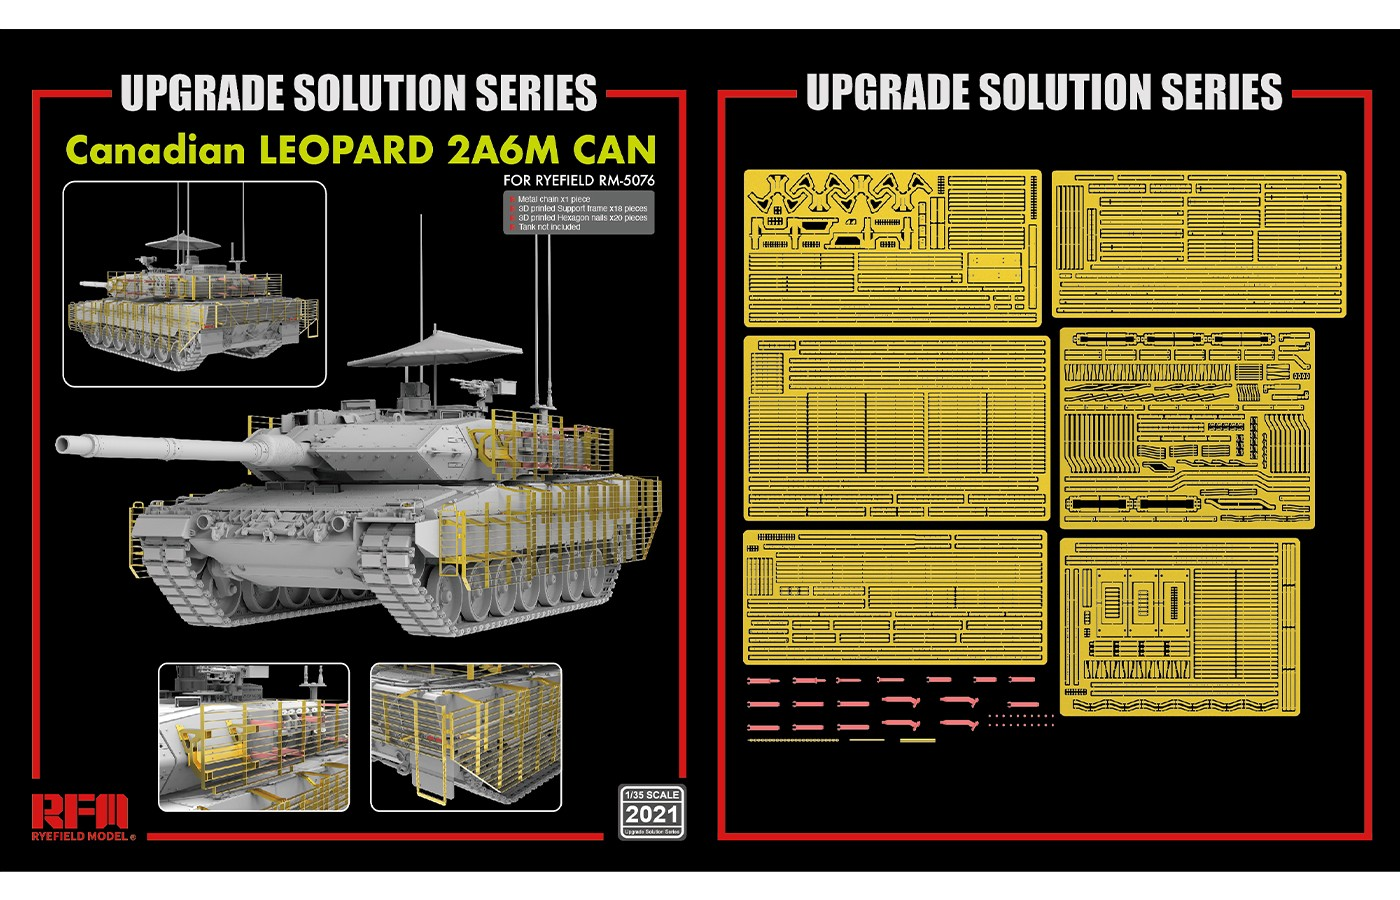 RM-2021 Canadian Leopard 2A6M CAN UPGRADE SOLUTION SERIES